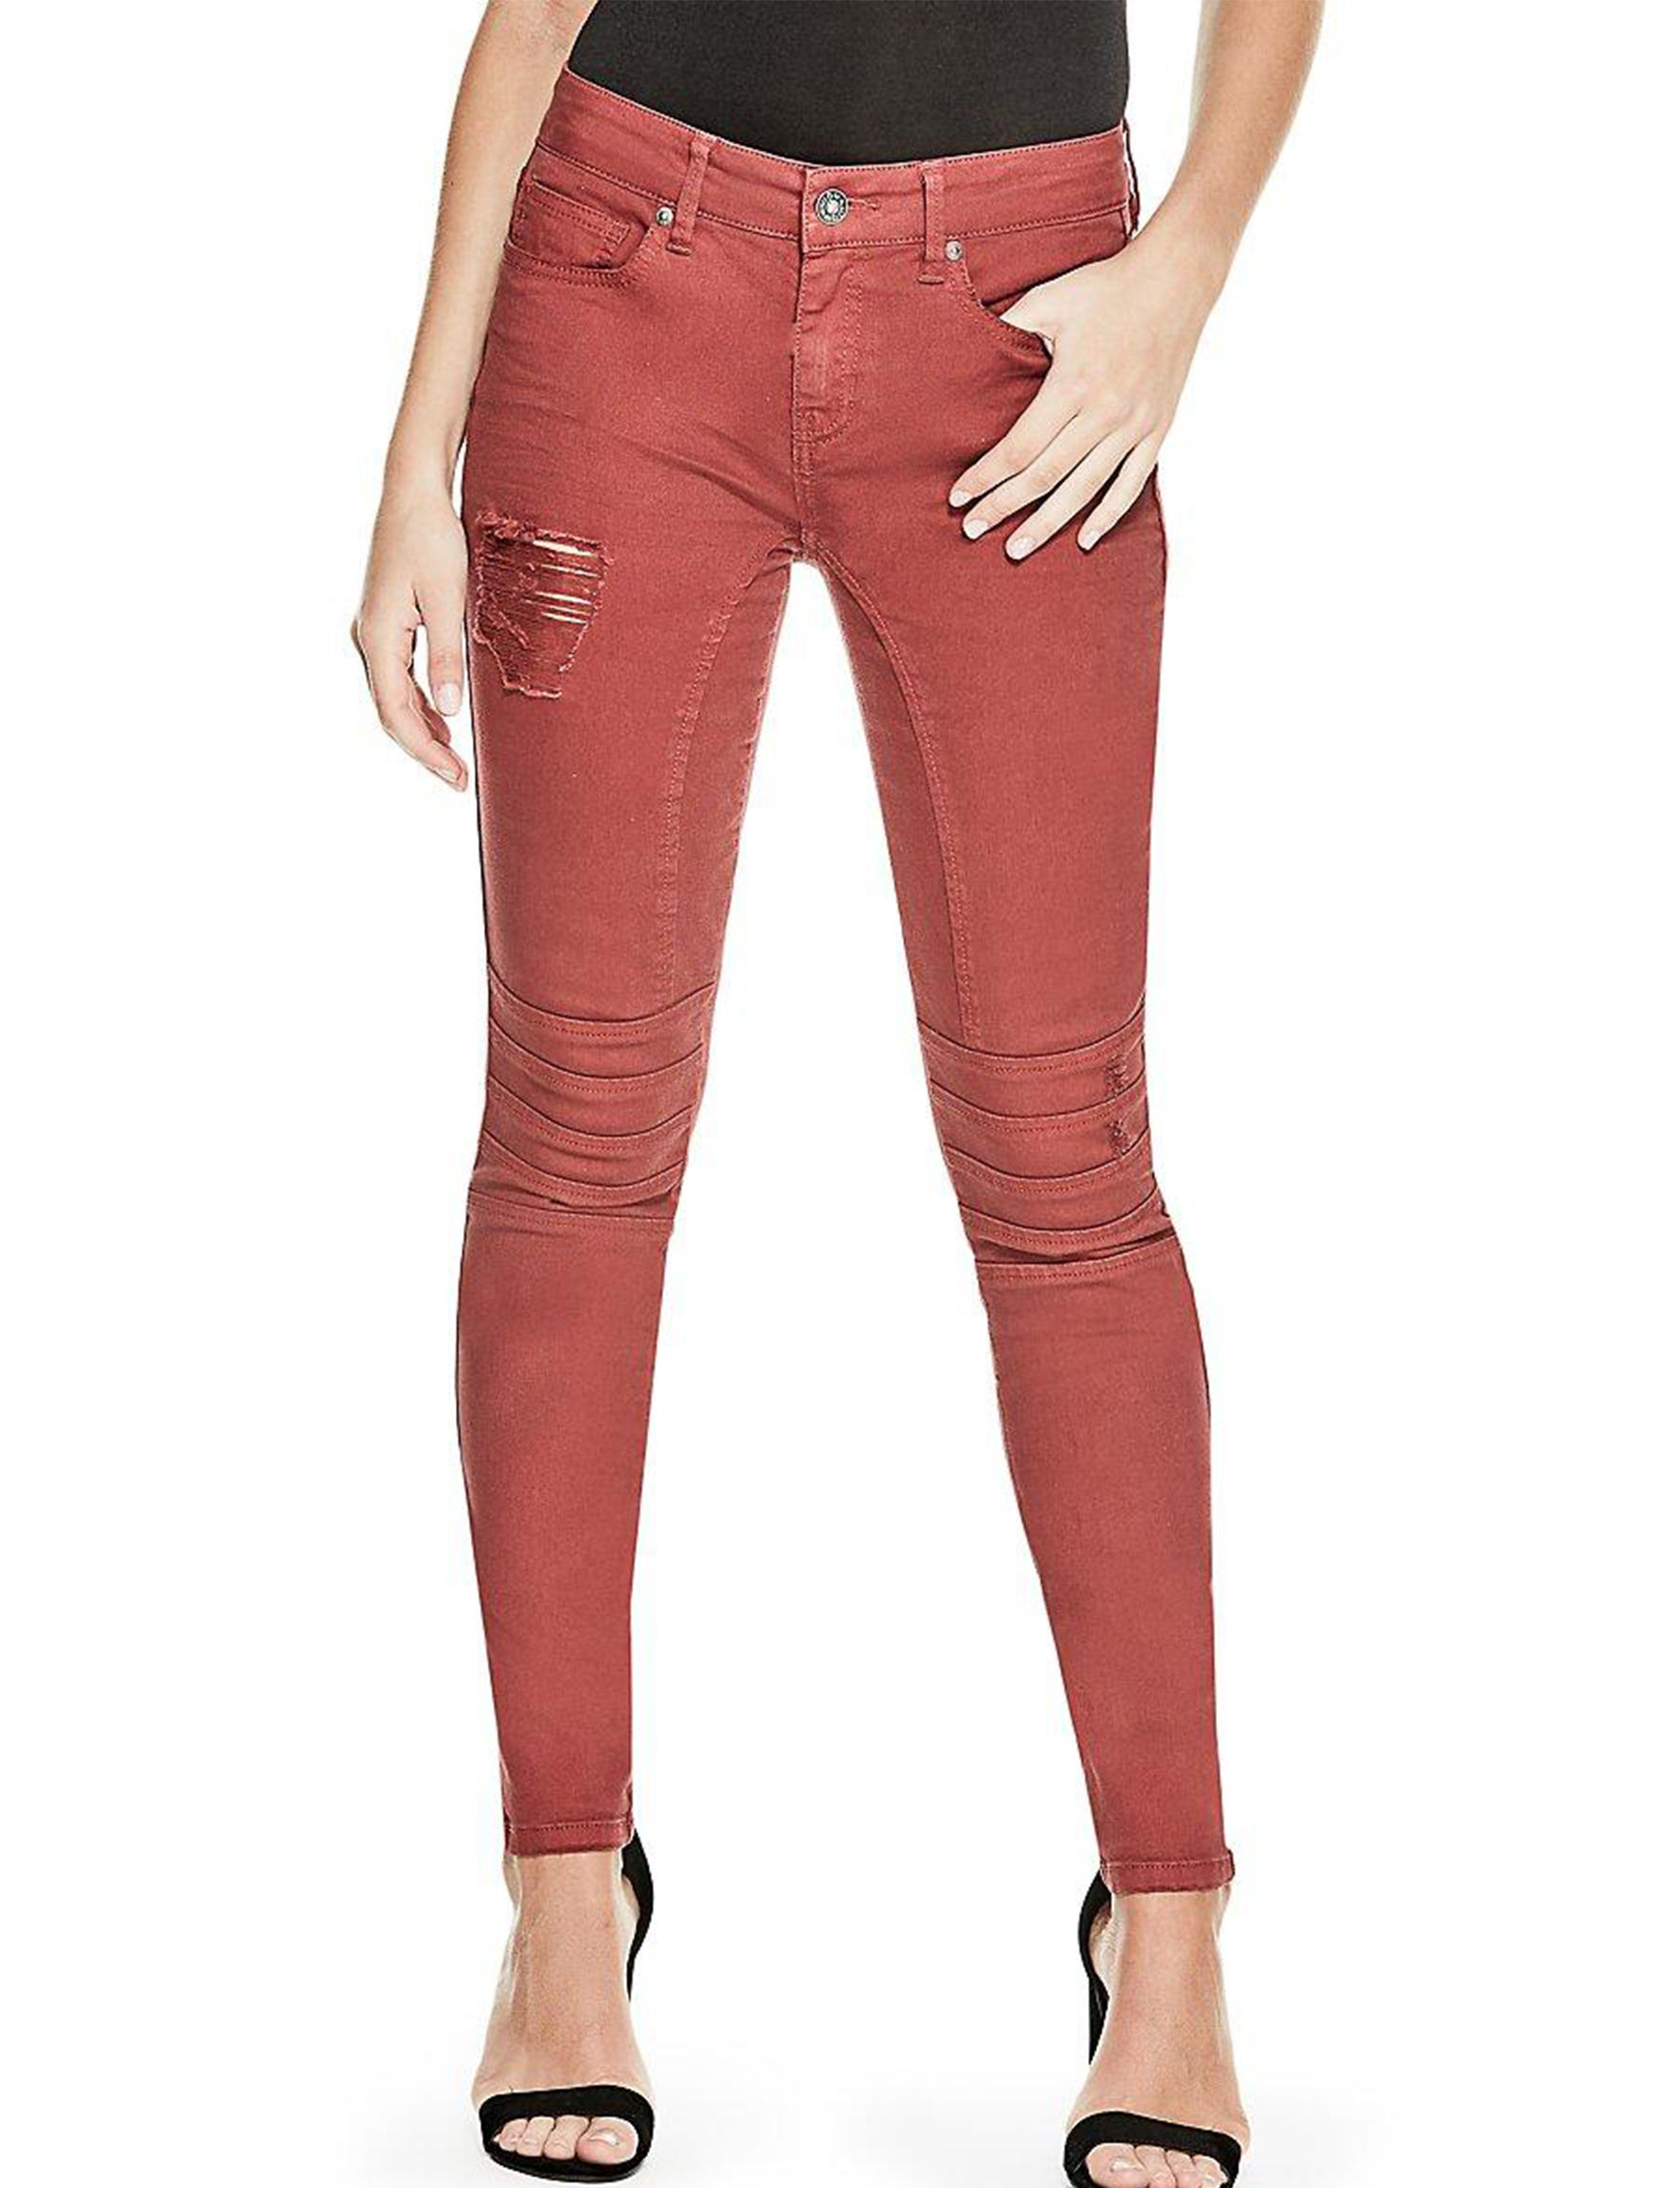 G by Guess Red Skinny